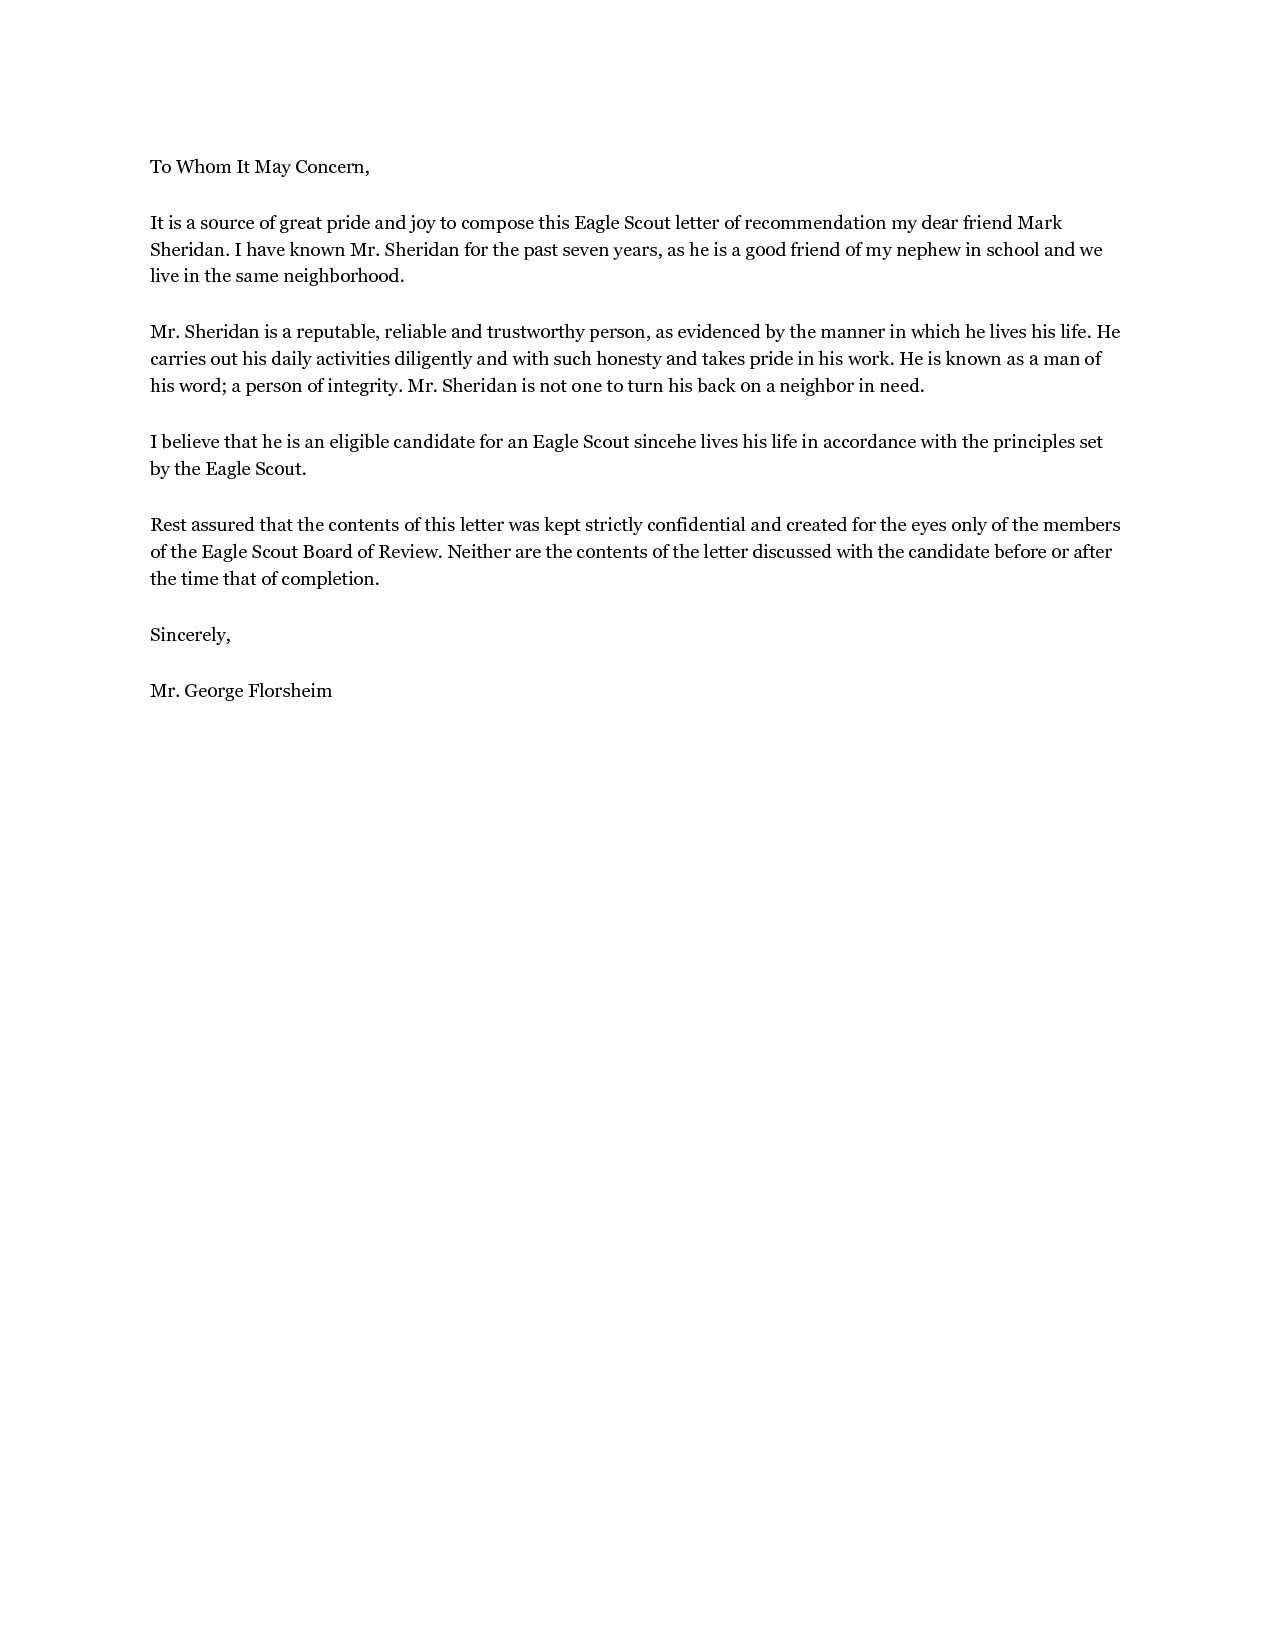 Personal Letter Of Recommendation for A Friend Template - Eagle Scout Parent Re Mendation Letter Template Acurnamedia